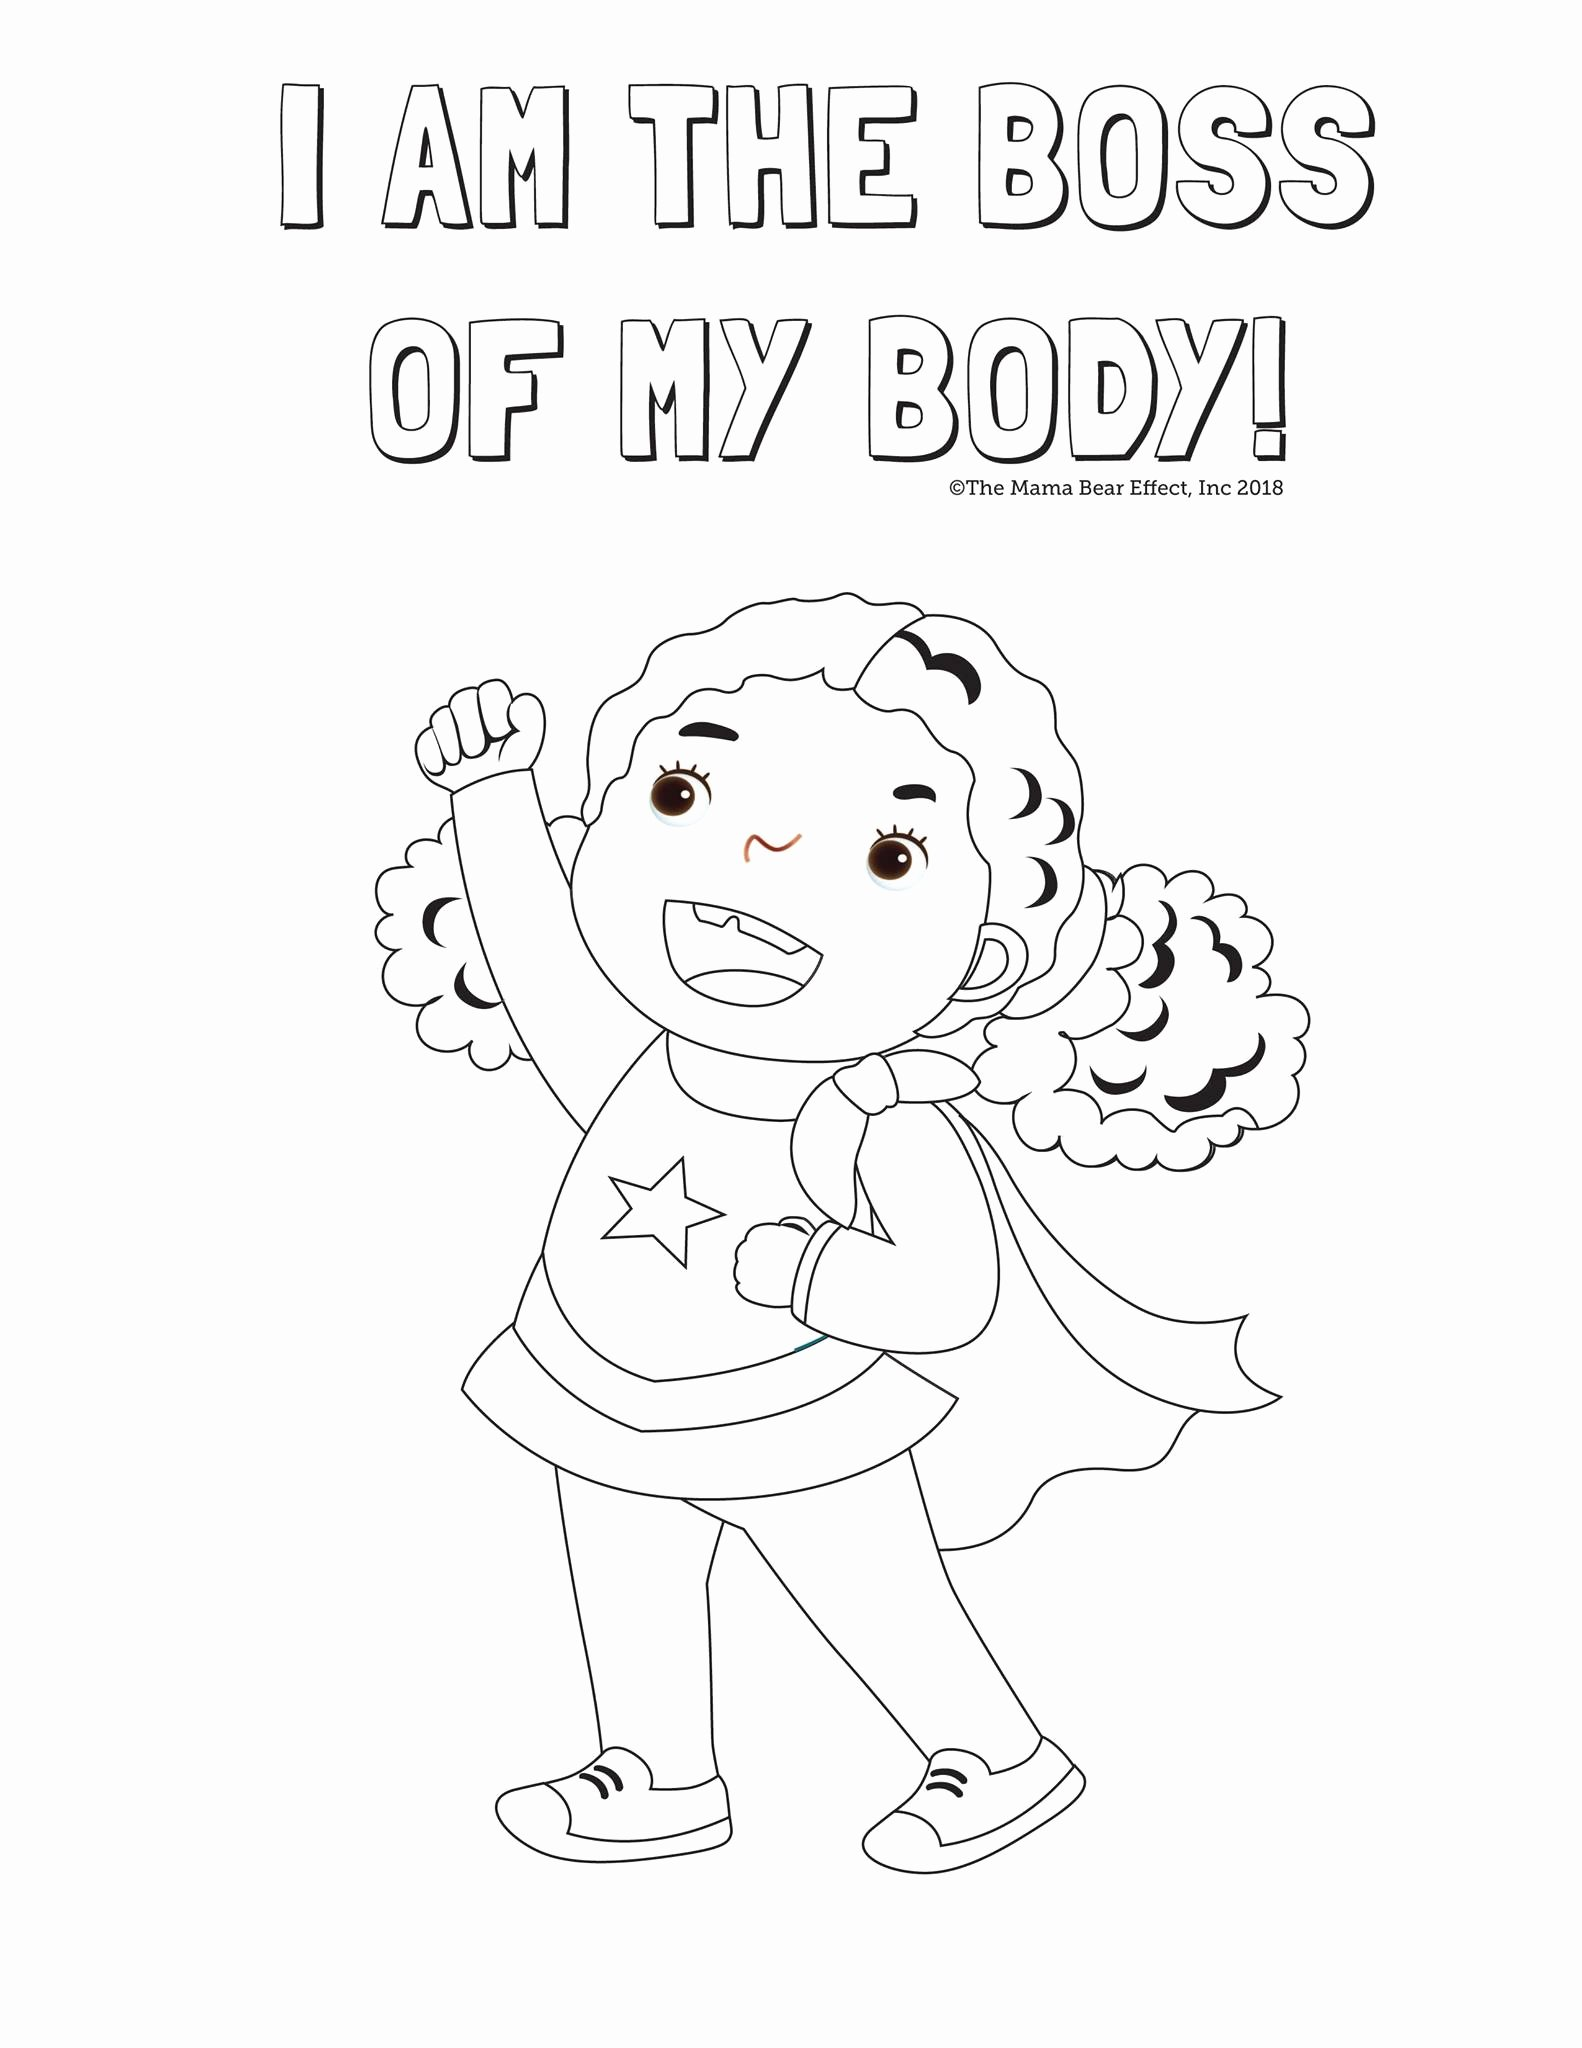 My Body Worksheets for Preschoolers Fresh Coloring the Mama Bear Effect Body Parts for Worksheets